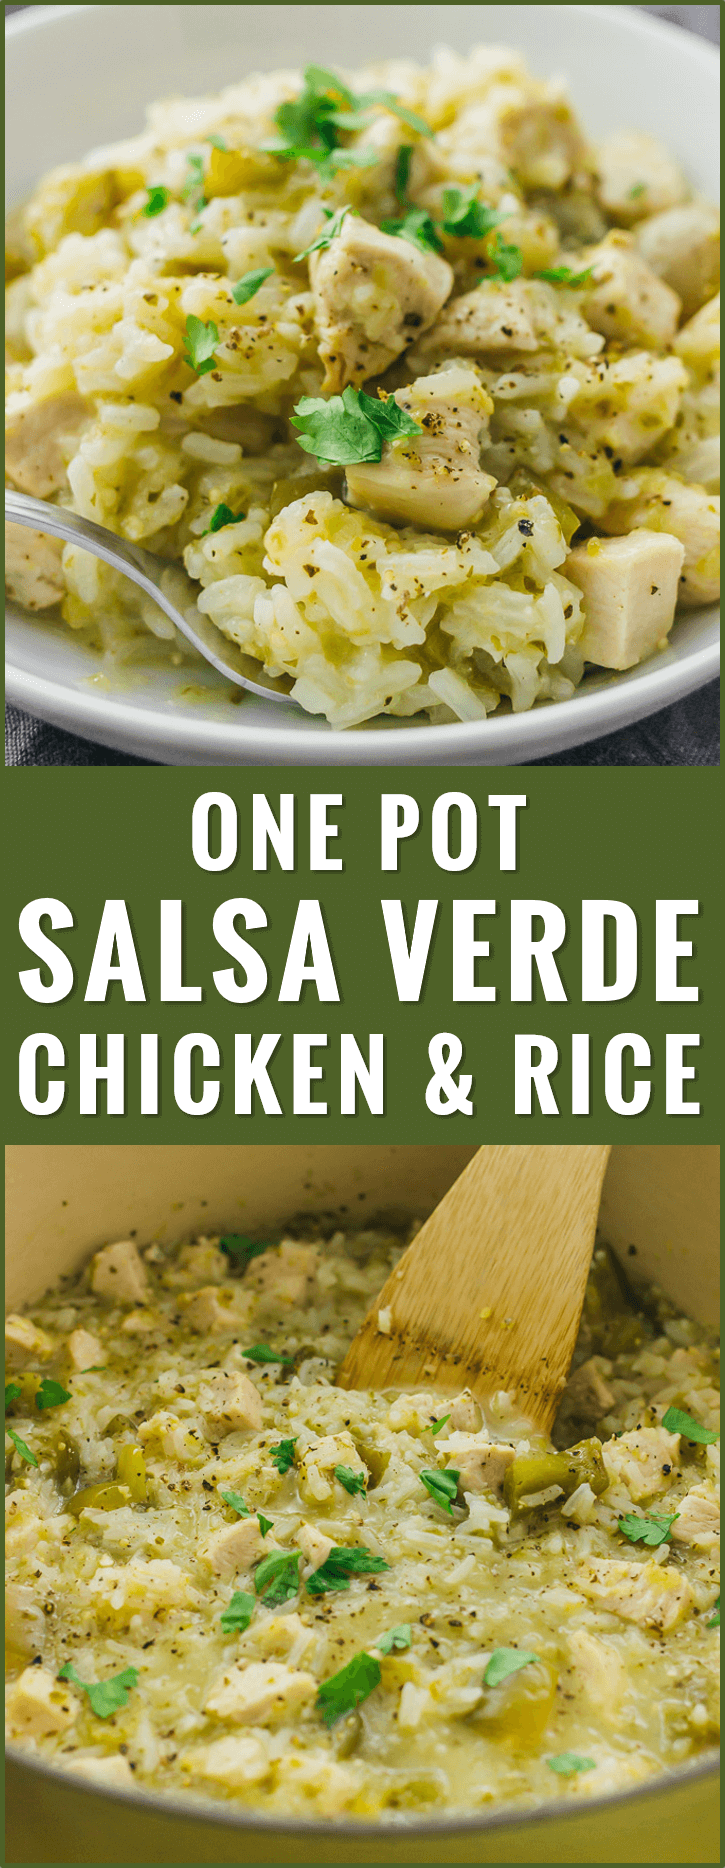 Try this quick and easy recipe for salsa verde chicken and rice -- just 6 ingredients and 1 pot needed. healthy, creamy, soup, skillet, low carb, skinnytaste, whole 30, thighs, paleo, oven, sides, honey lime, delish, bowl, weight watchers, trader joes, ideas, homemade, 21 day fix, meals, instapot, dishes, 4 ingredient, shredded, dinner, quick, keto, pozole, green, six sisters, tasty, stove top, iowa girl eats, clean, comfort foods, simple, families, weeknight meals, cilantro, kitchens, veggies, cleanses, friends, snacks, parties